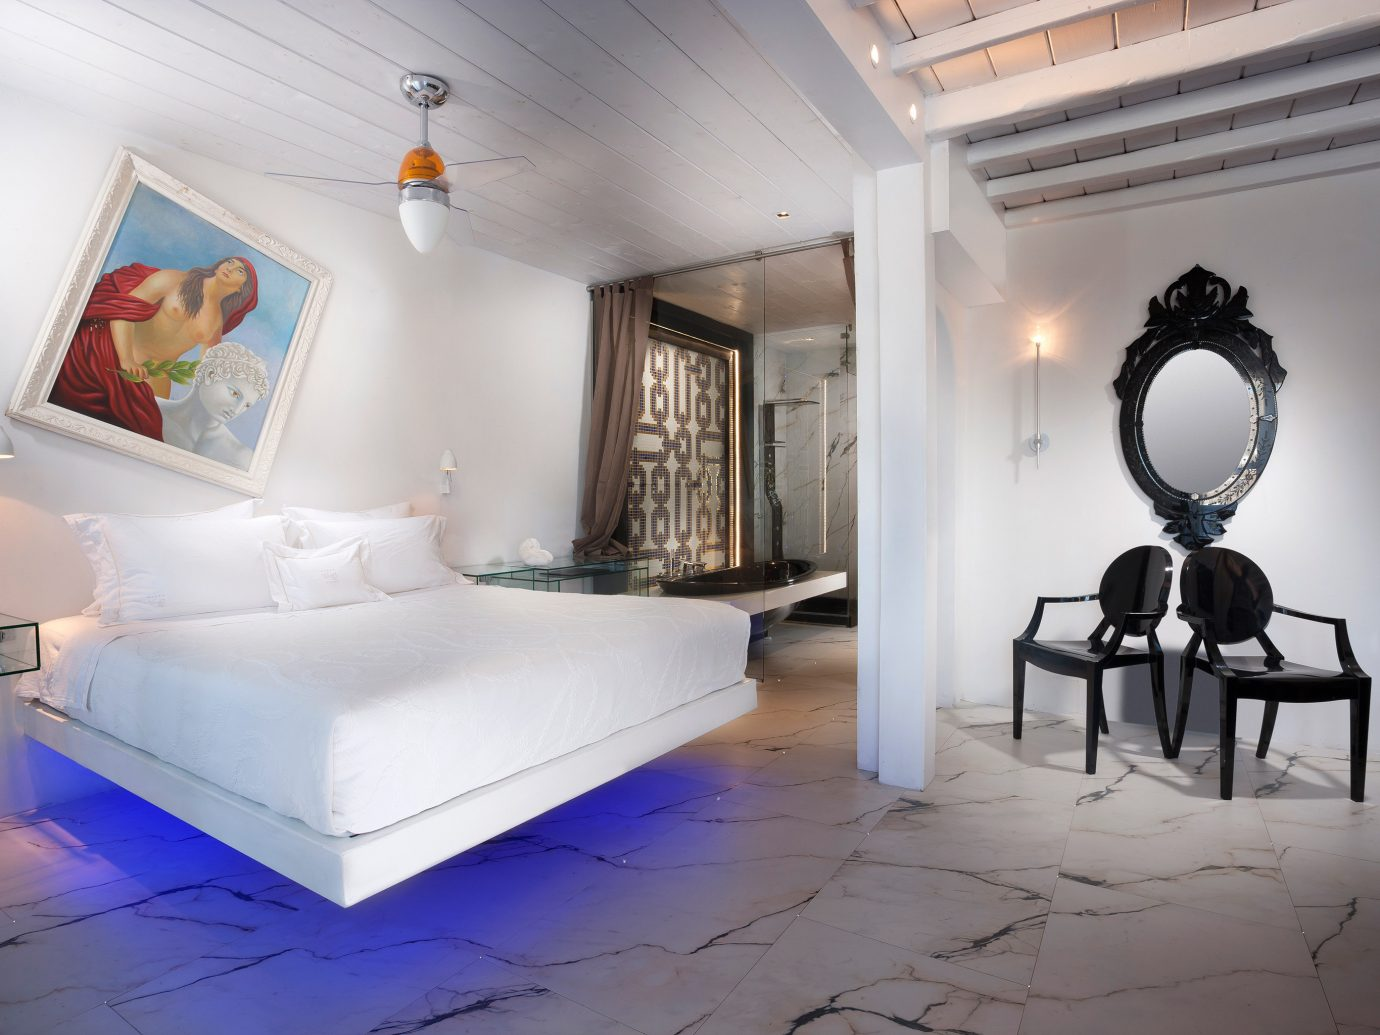 Bedroom Boutique Hotels Festivals + Events Hip Hotels Lounge Luxury Modern Suite Trip Ideas indoor wall room property ceiling living room floor interior design estate furniture home Design mansion apartment